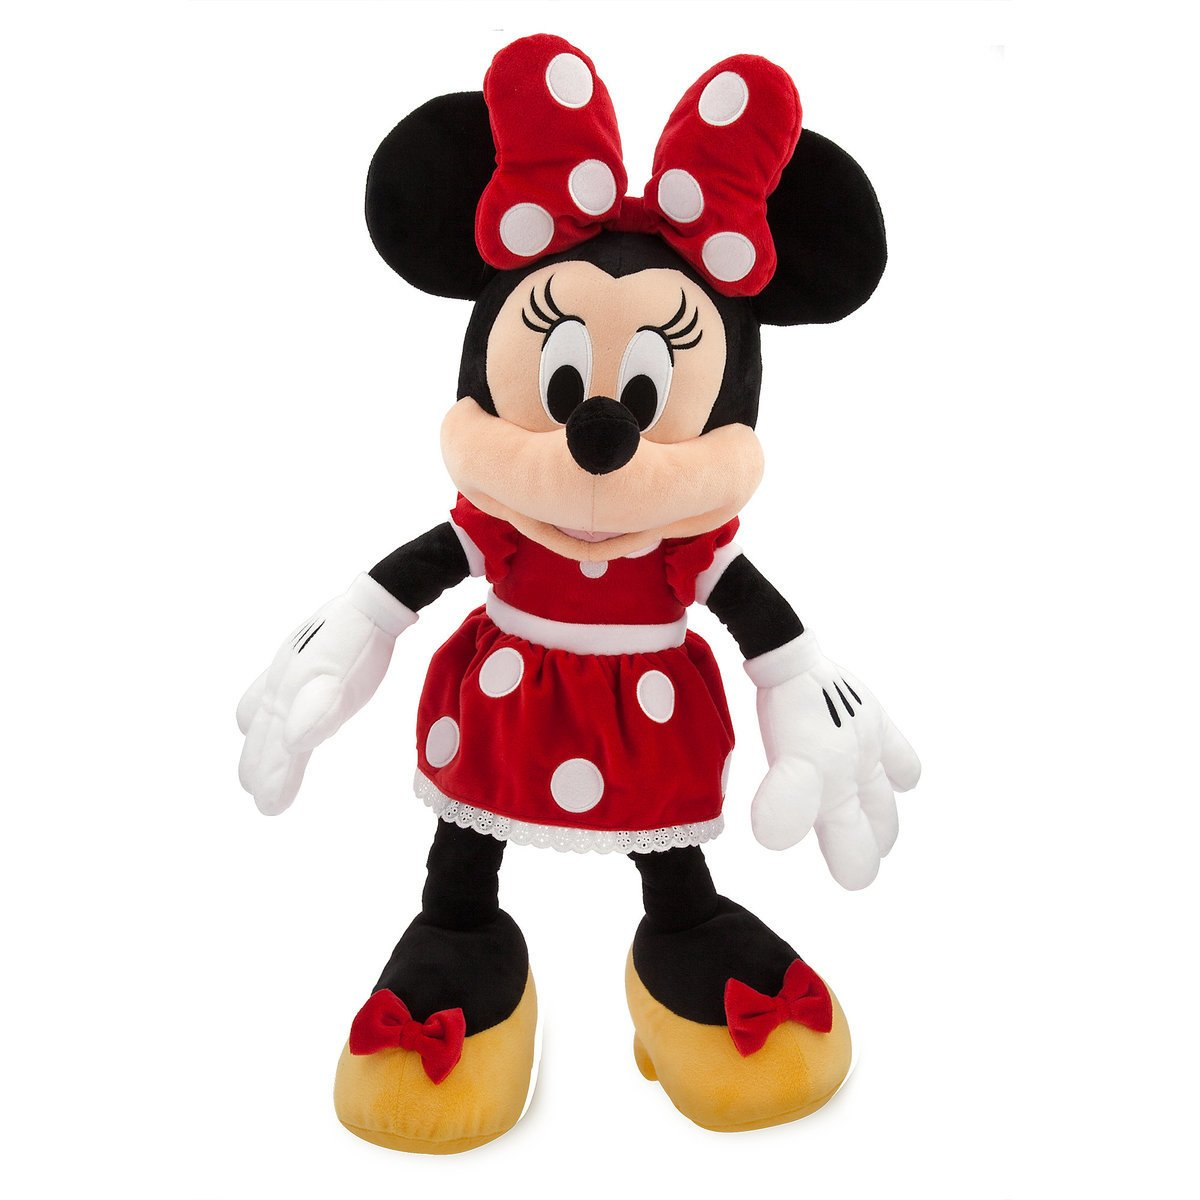 Disney Store Minnie Mouse Plush Red Large 27 Inc New With Tags